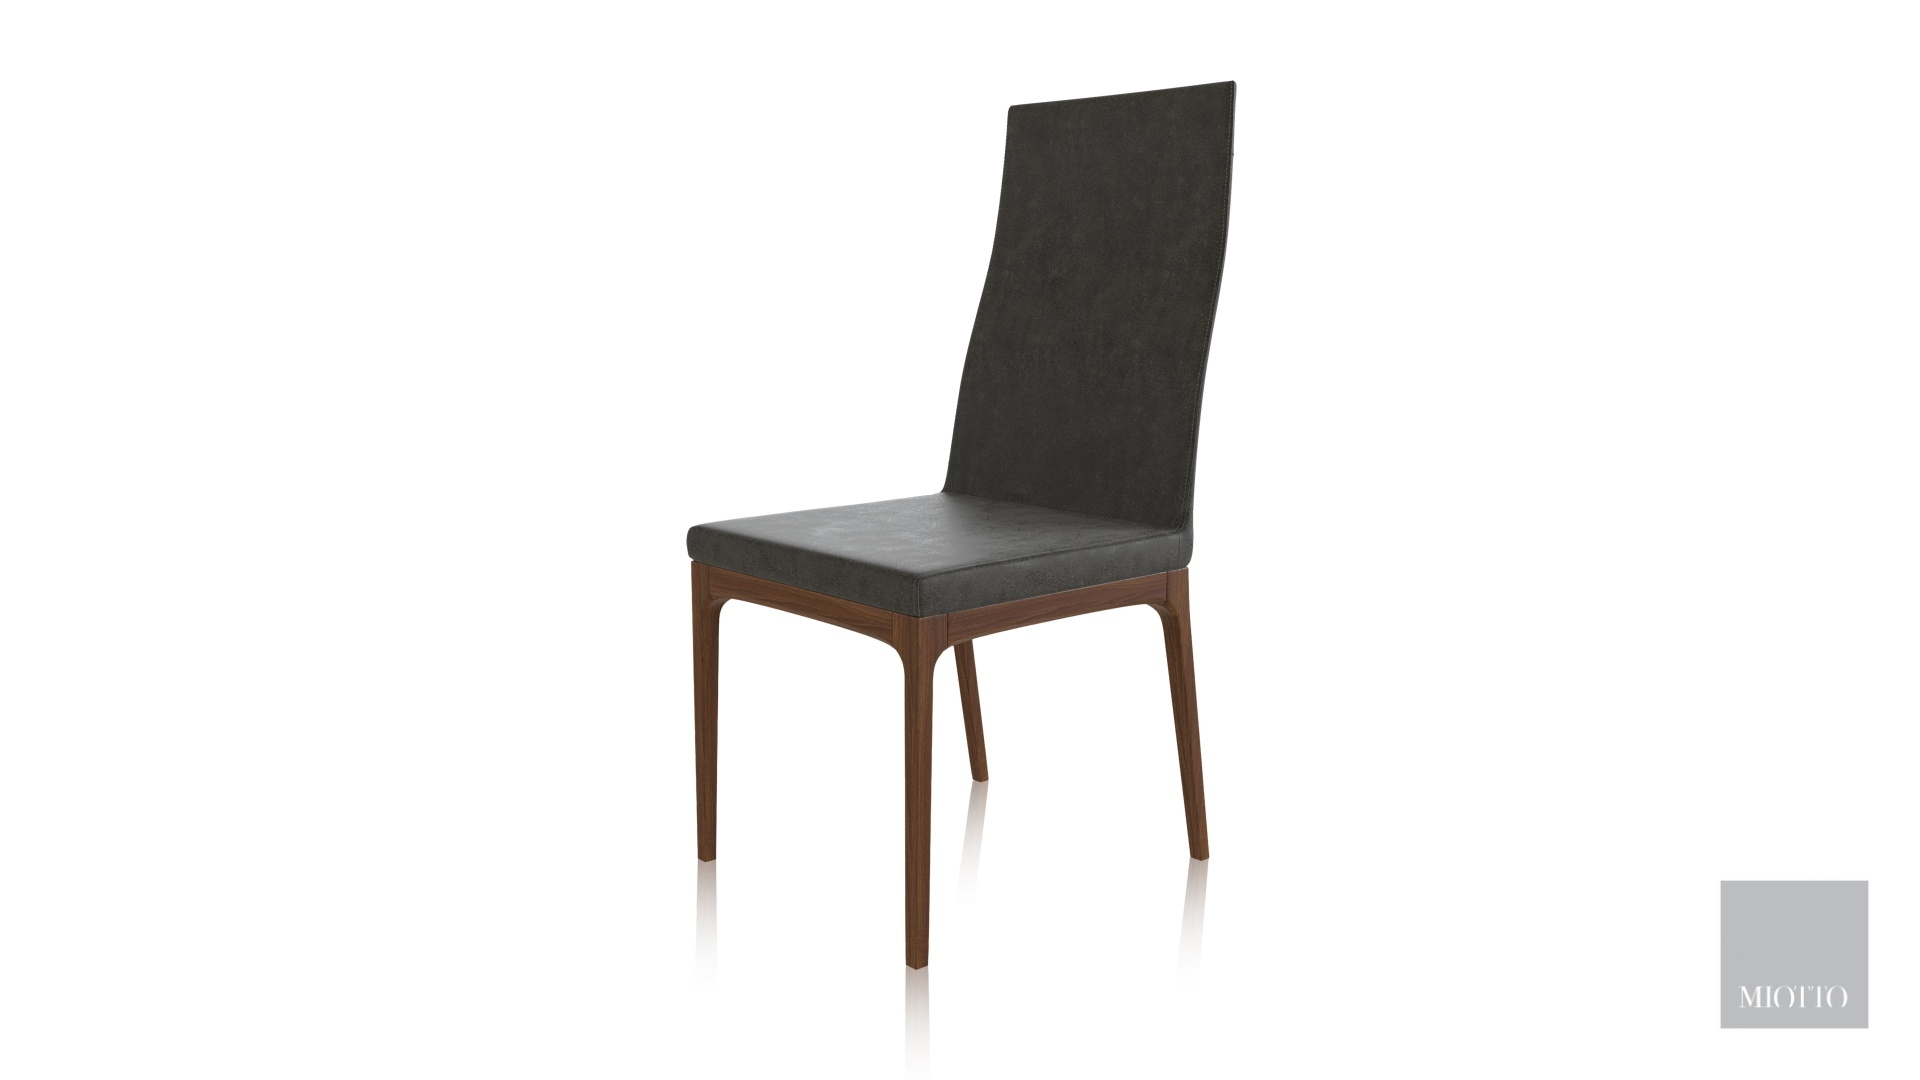 miotto_lanzo DC dark grey front T miotto dining chair furniture